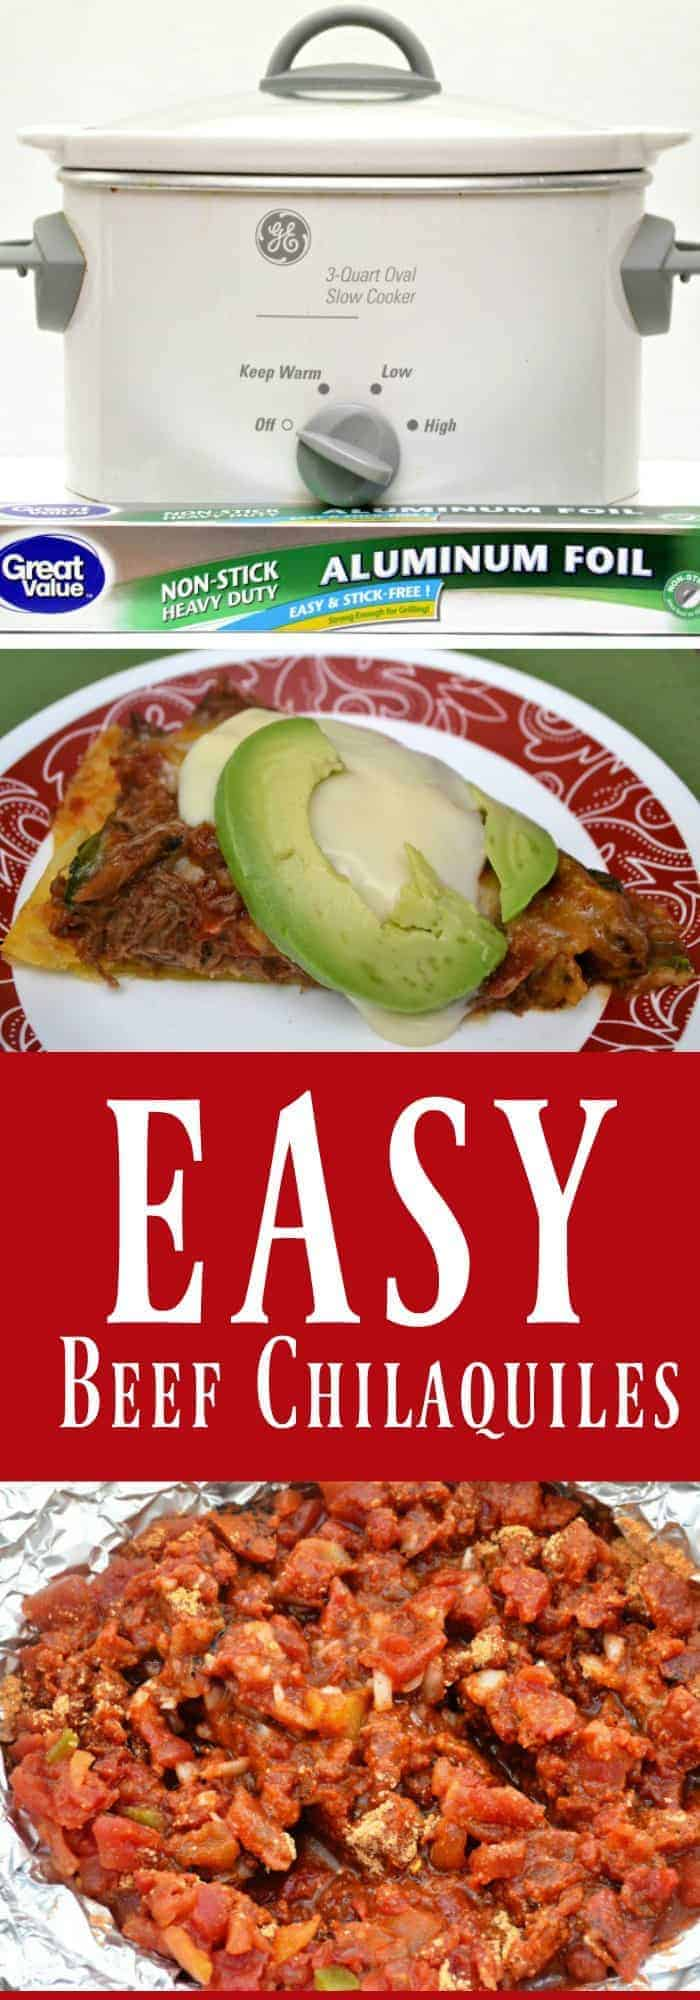 Easy Beef Chilaquiles